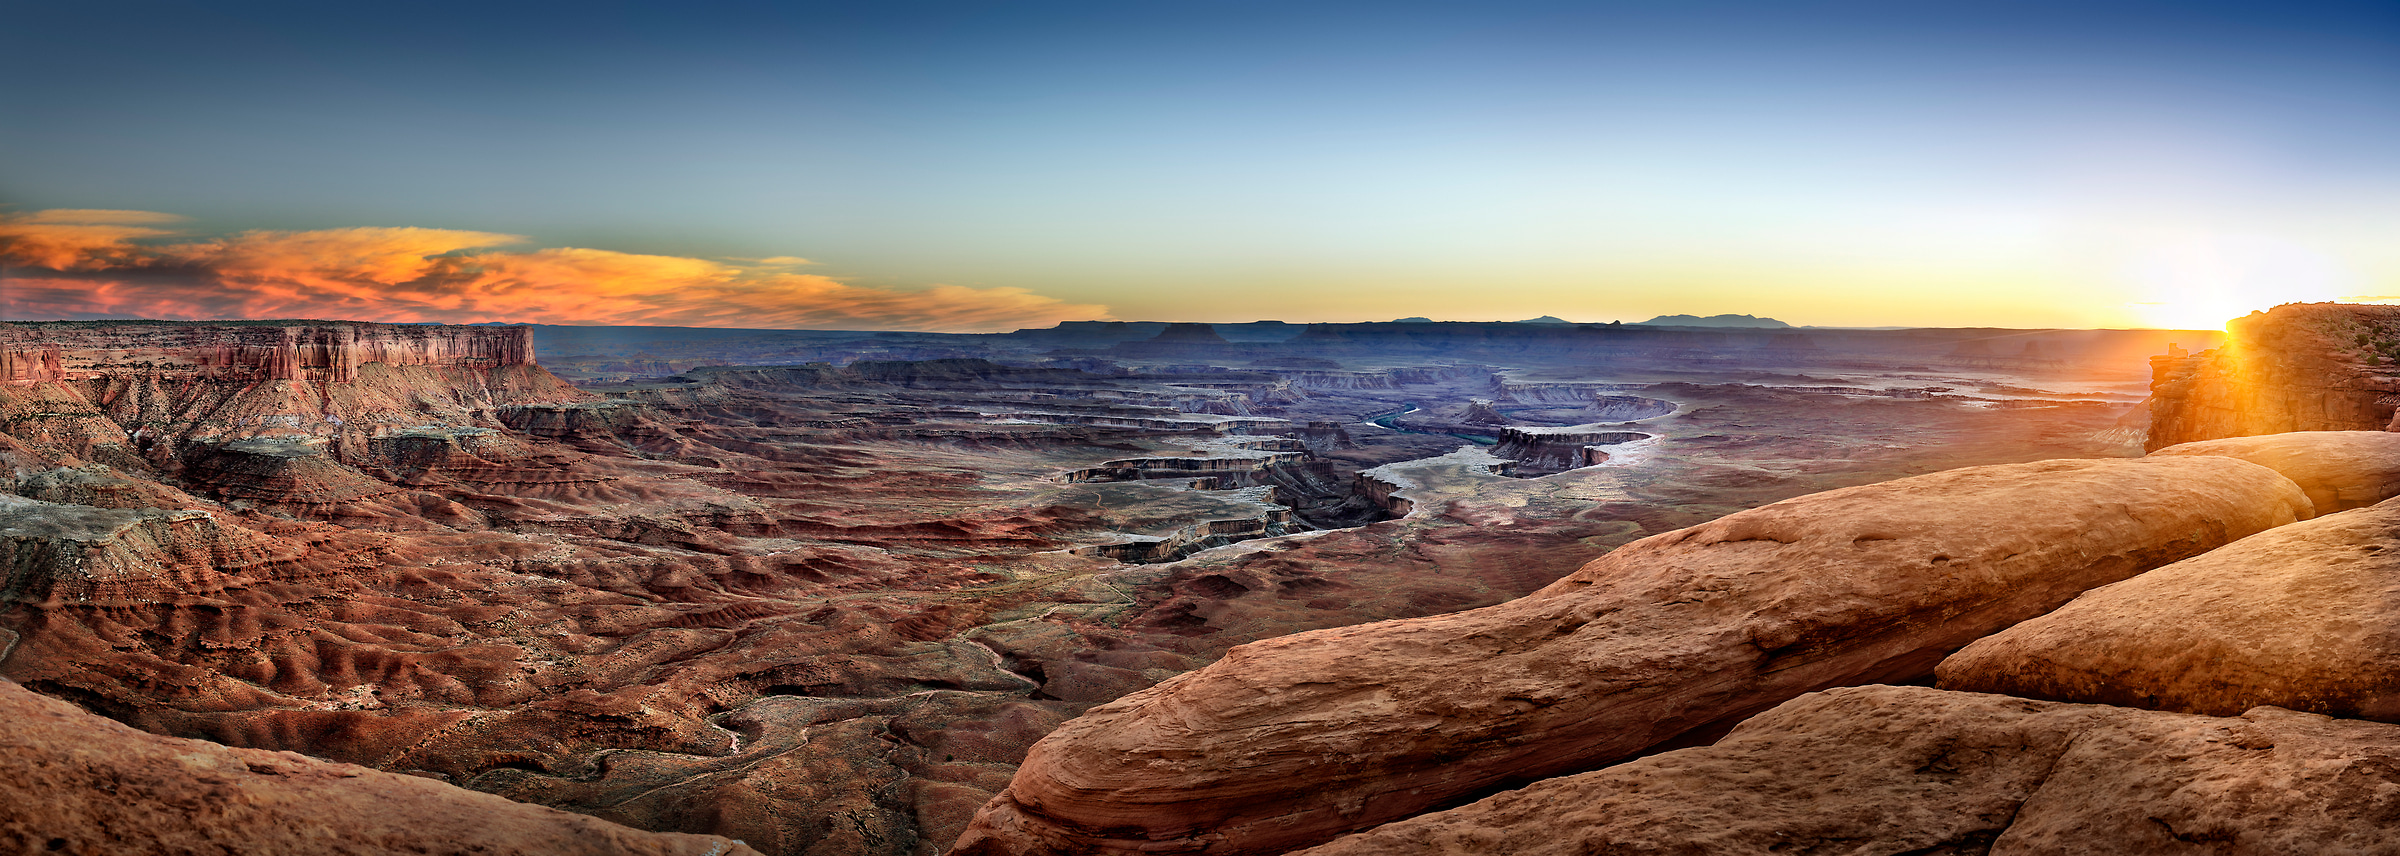 287 megapixels! A very high resolution panorama photo of Canyonlands National Park; VAST photo created by Phil Crawshay in Canyonlands National Park, Utah, USA